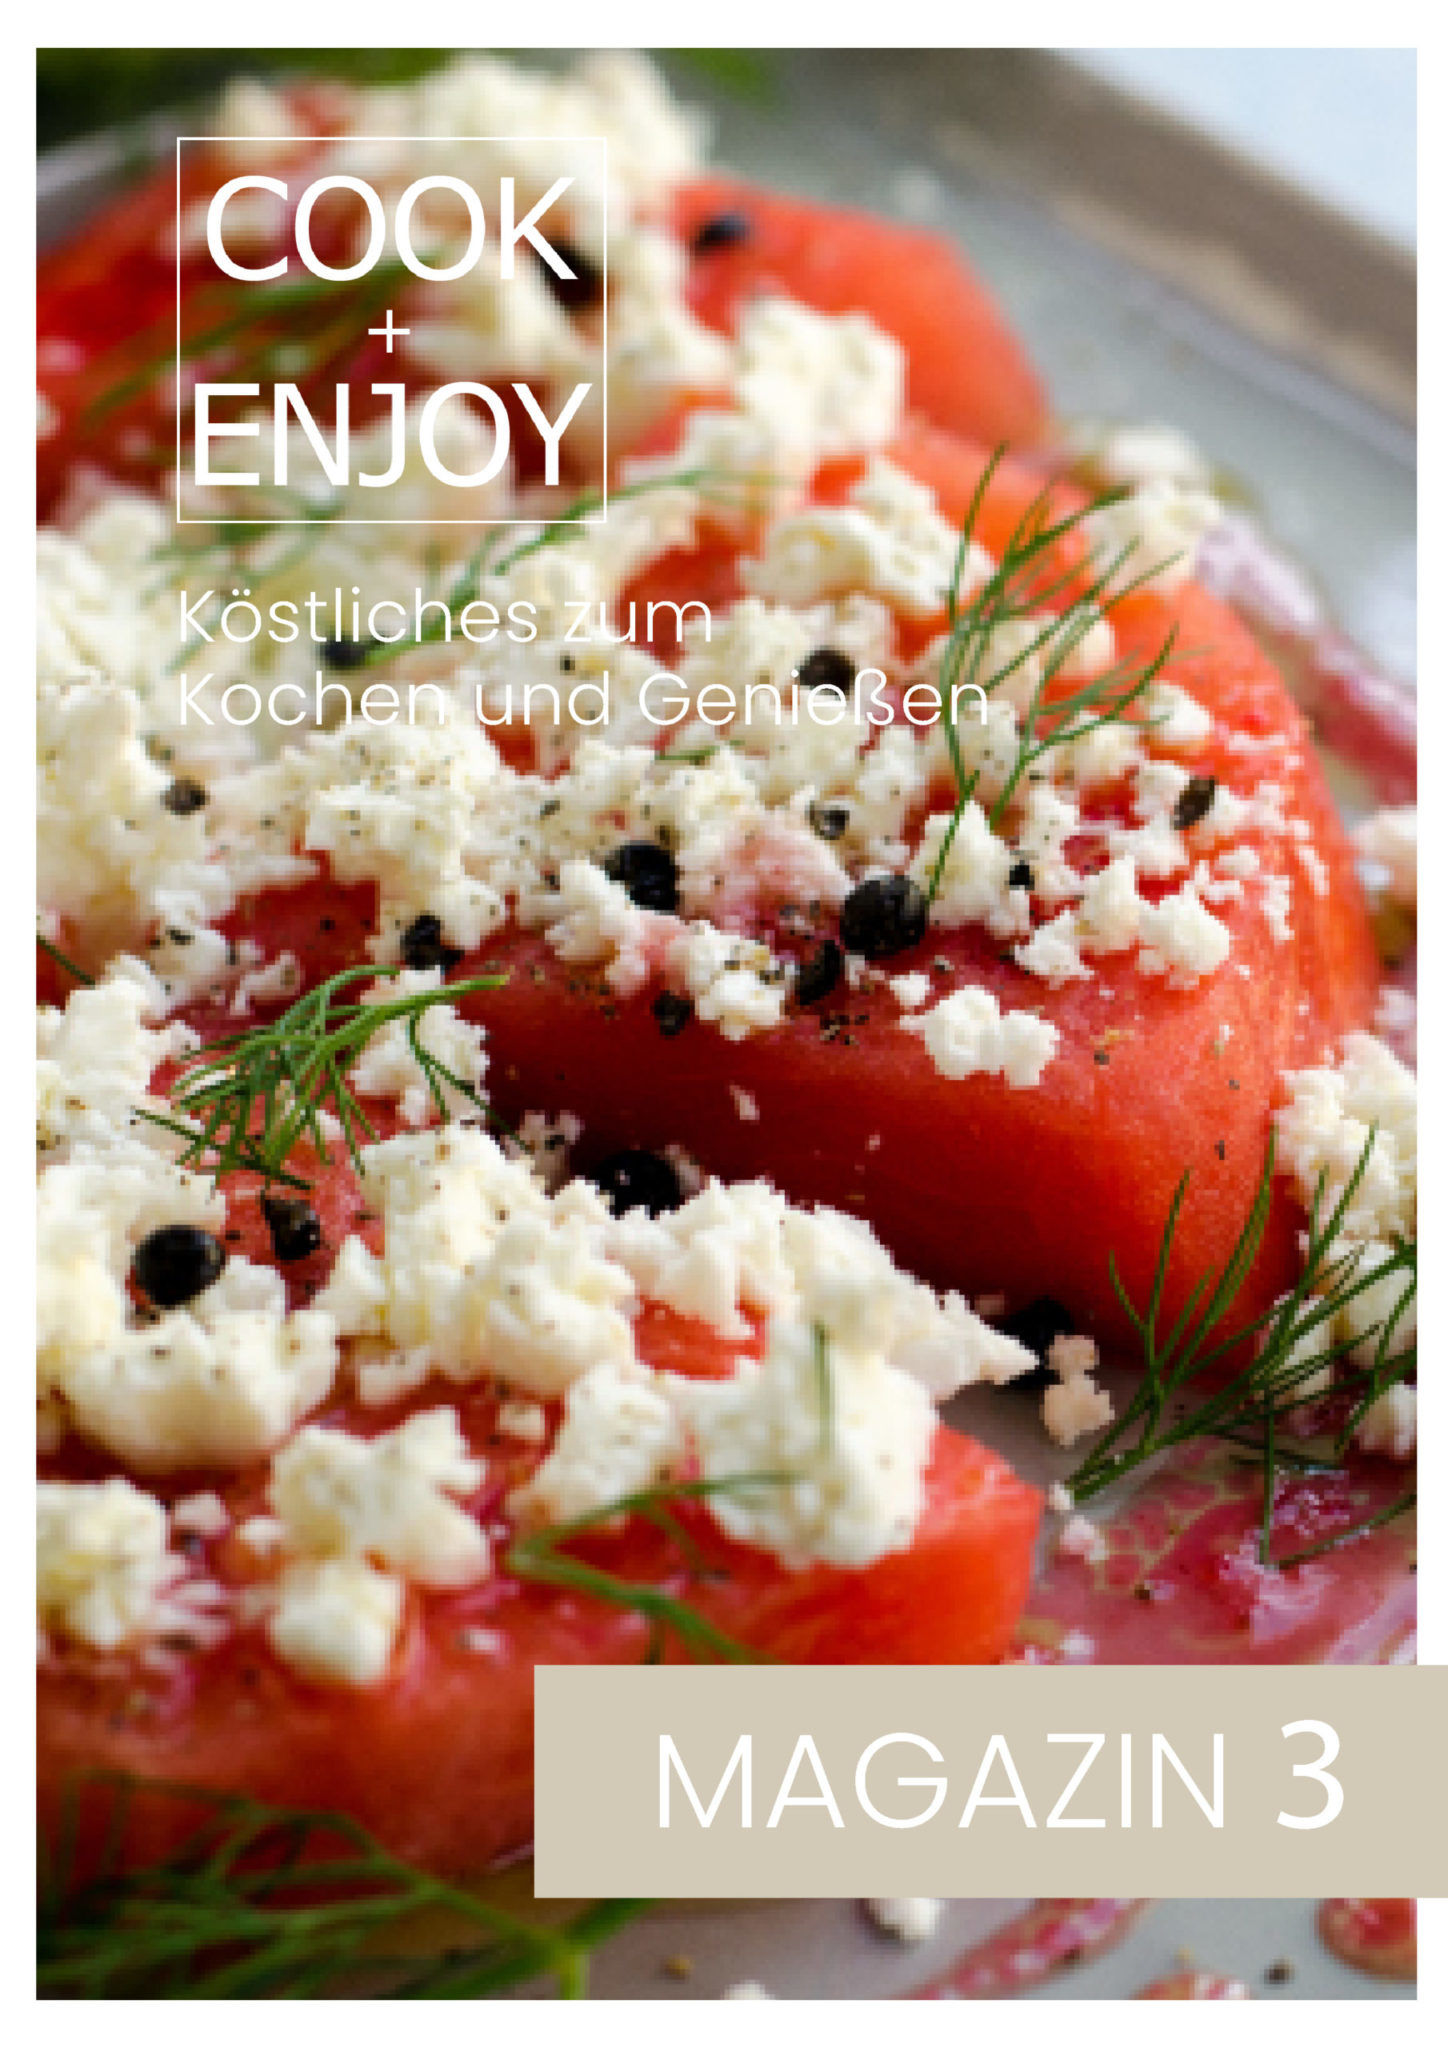 COOK and ENJOY Aktuell neues Magazin